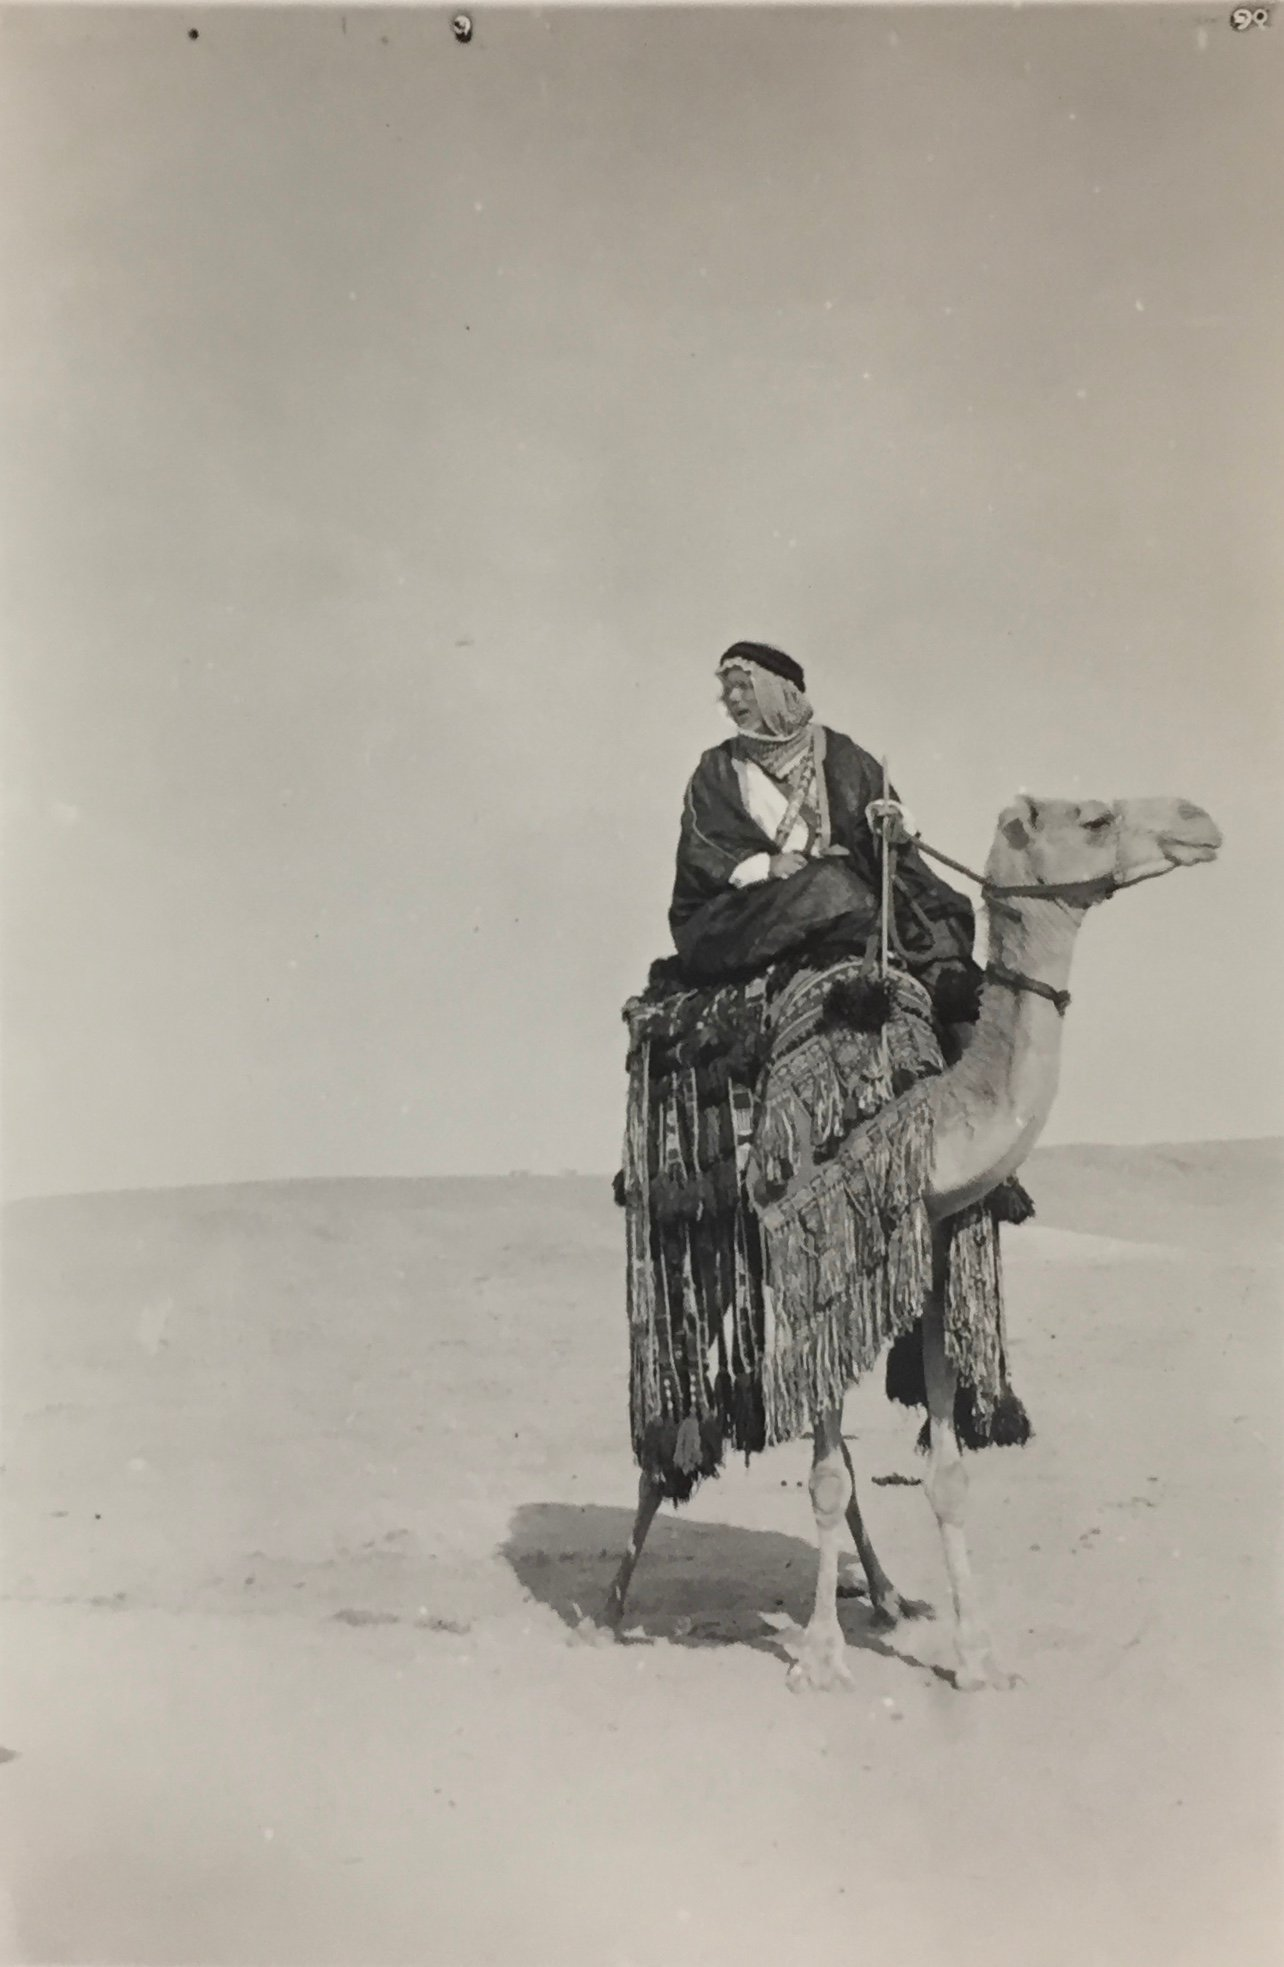 Haji Mohammed Husein-el-Mahdi (1891-1972), a.k.a. Arthur Neervoort van de Poll, a Dutch-Saudi convert to Islam, on camelback. Small photo taken around 1930, in a collection of former Dutch consul and envoy in Jeddah, C. Adriaanse, in the Dutch national archives, where unidentified. Reproduction by Aarnout Helb in 2017 for Greenbox Museum - Heritage section. Original source citation: Nationaal Archief, Den Haag, Collectie 406 Adriaanse, 1886-1985, nummer toegang 2.21.205.01, inventarisnummer 109.